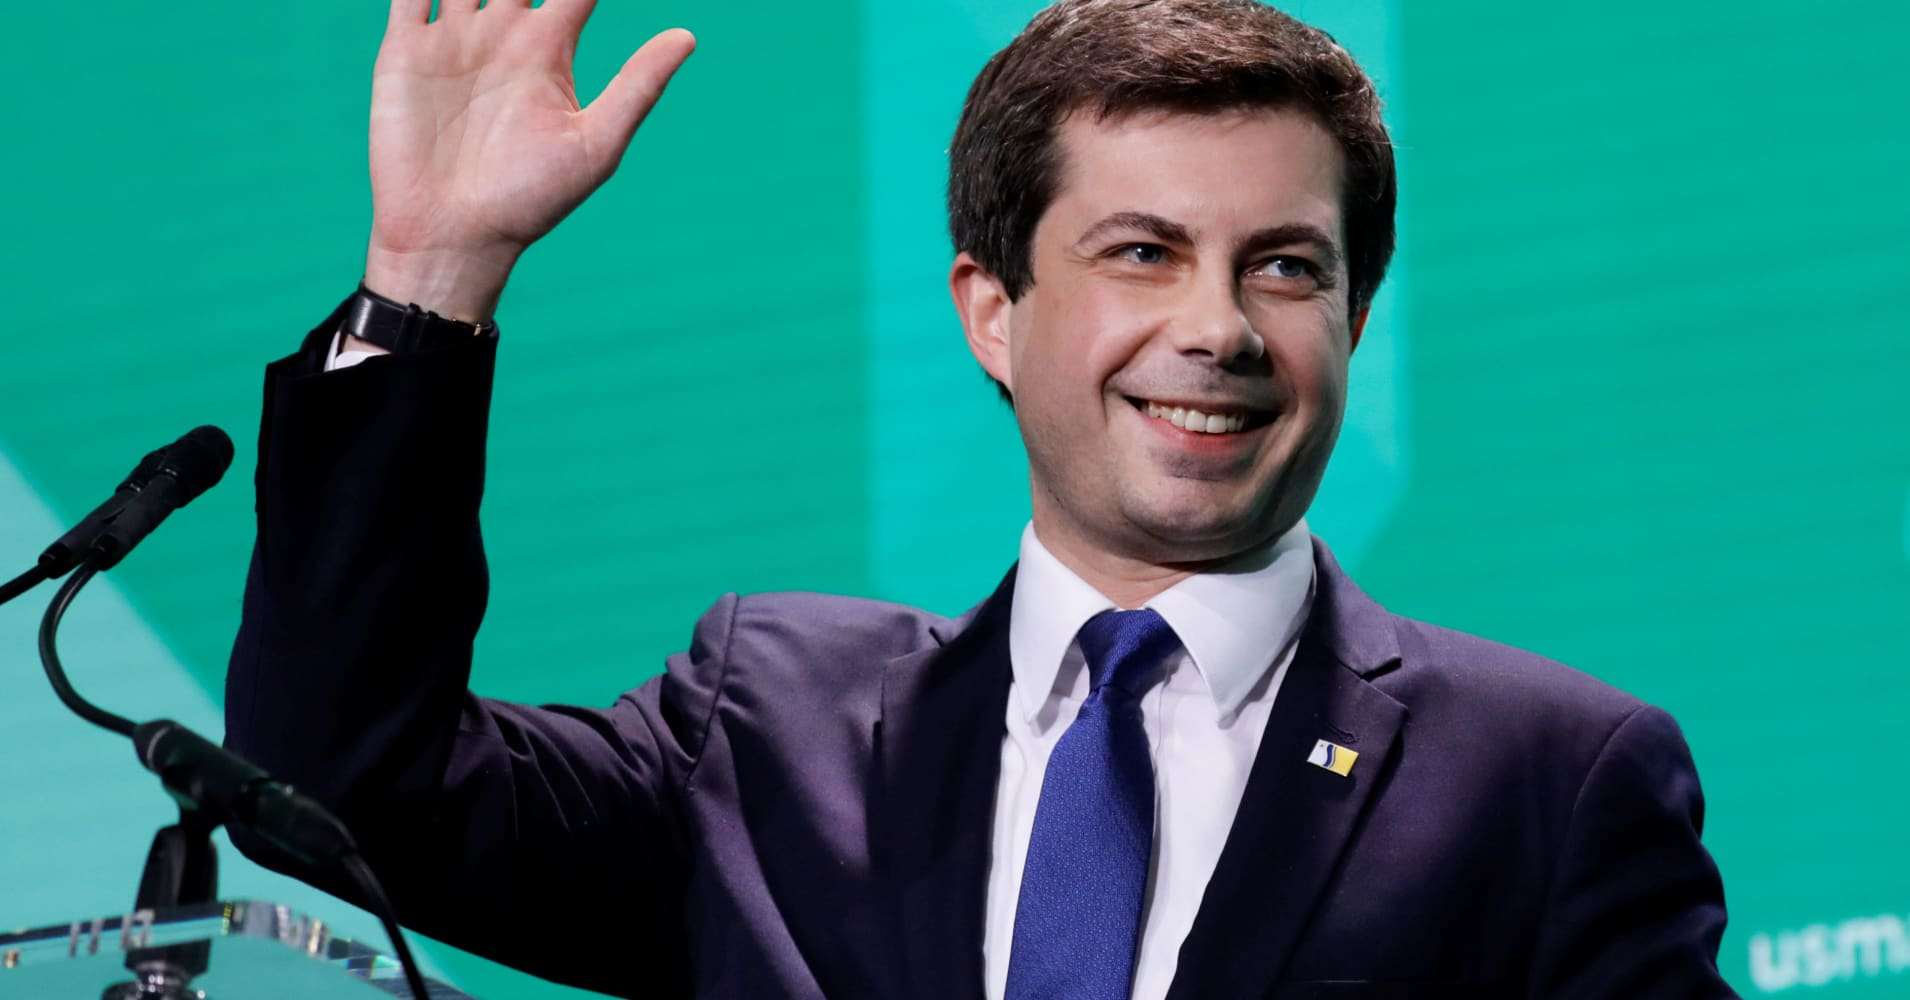 Pete Buttigieg, 37, thinks he can become the youngest US president